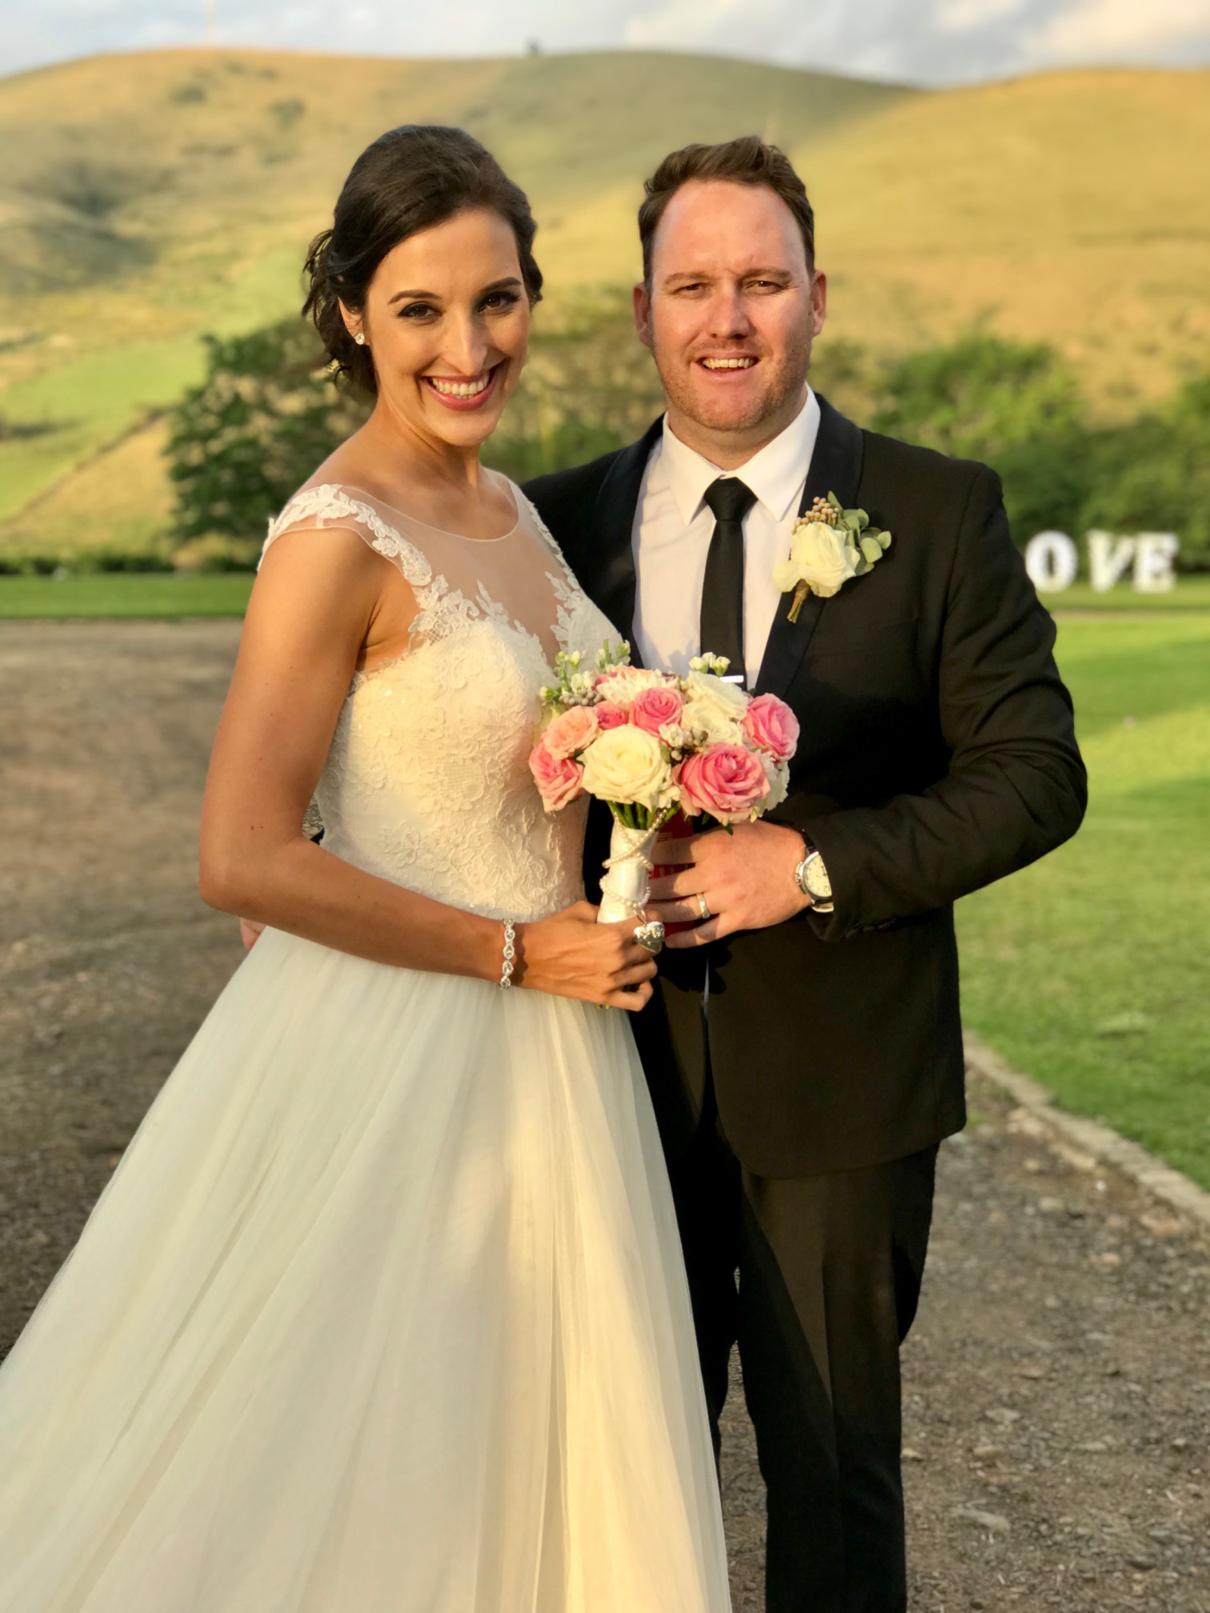 Wedding DJ Durban - Jarryd Sunkel at Thorner Country Estate